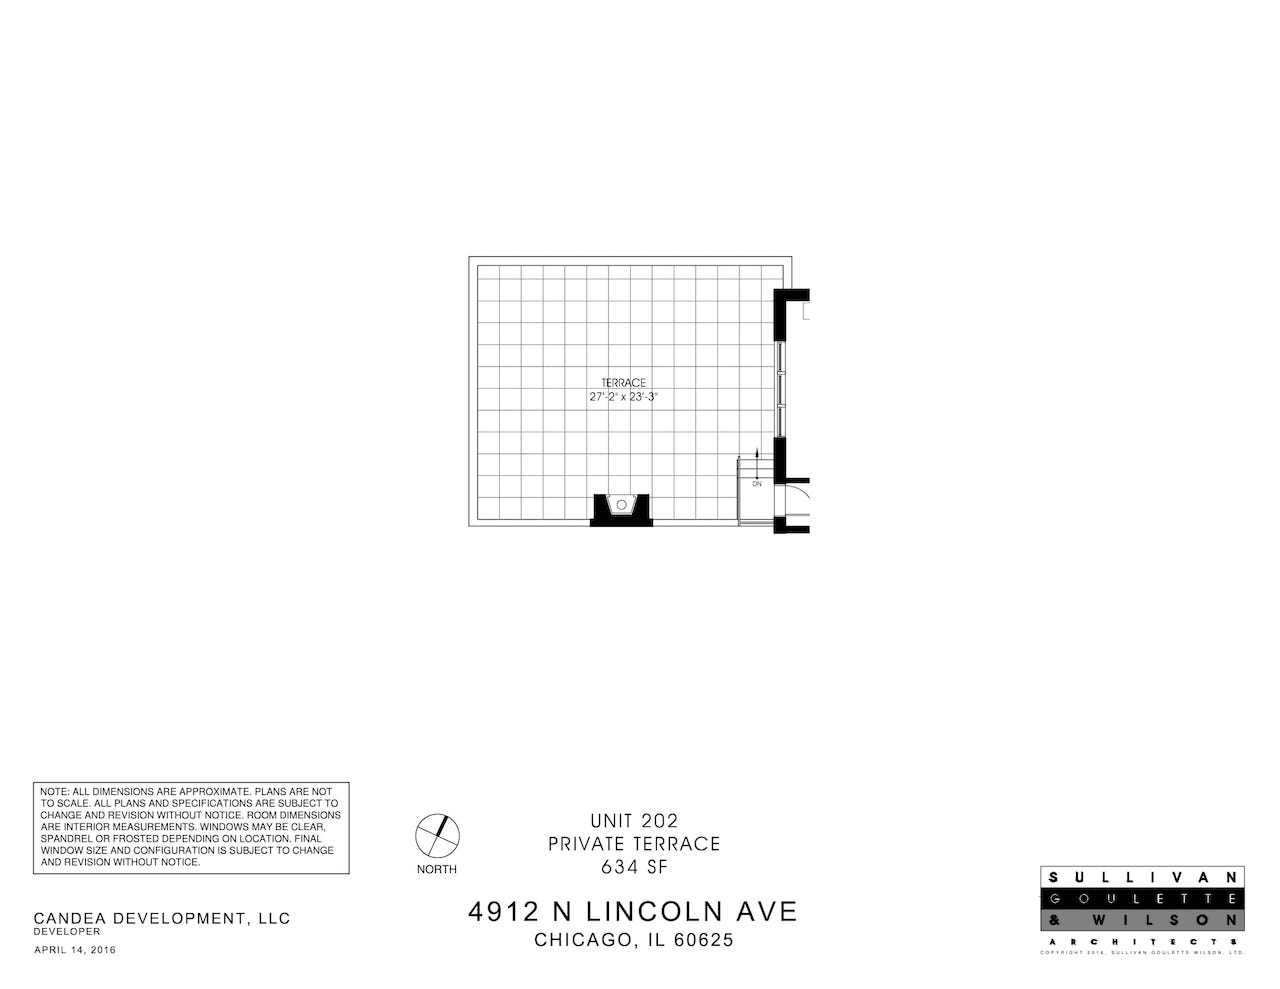 Lincoln4912N_Unit 202 Terrace-1